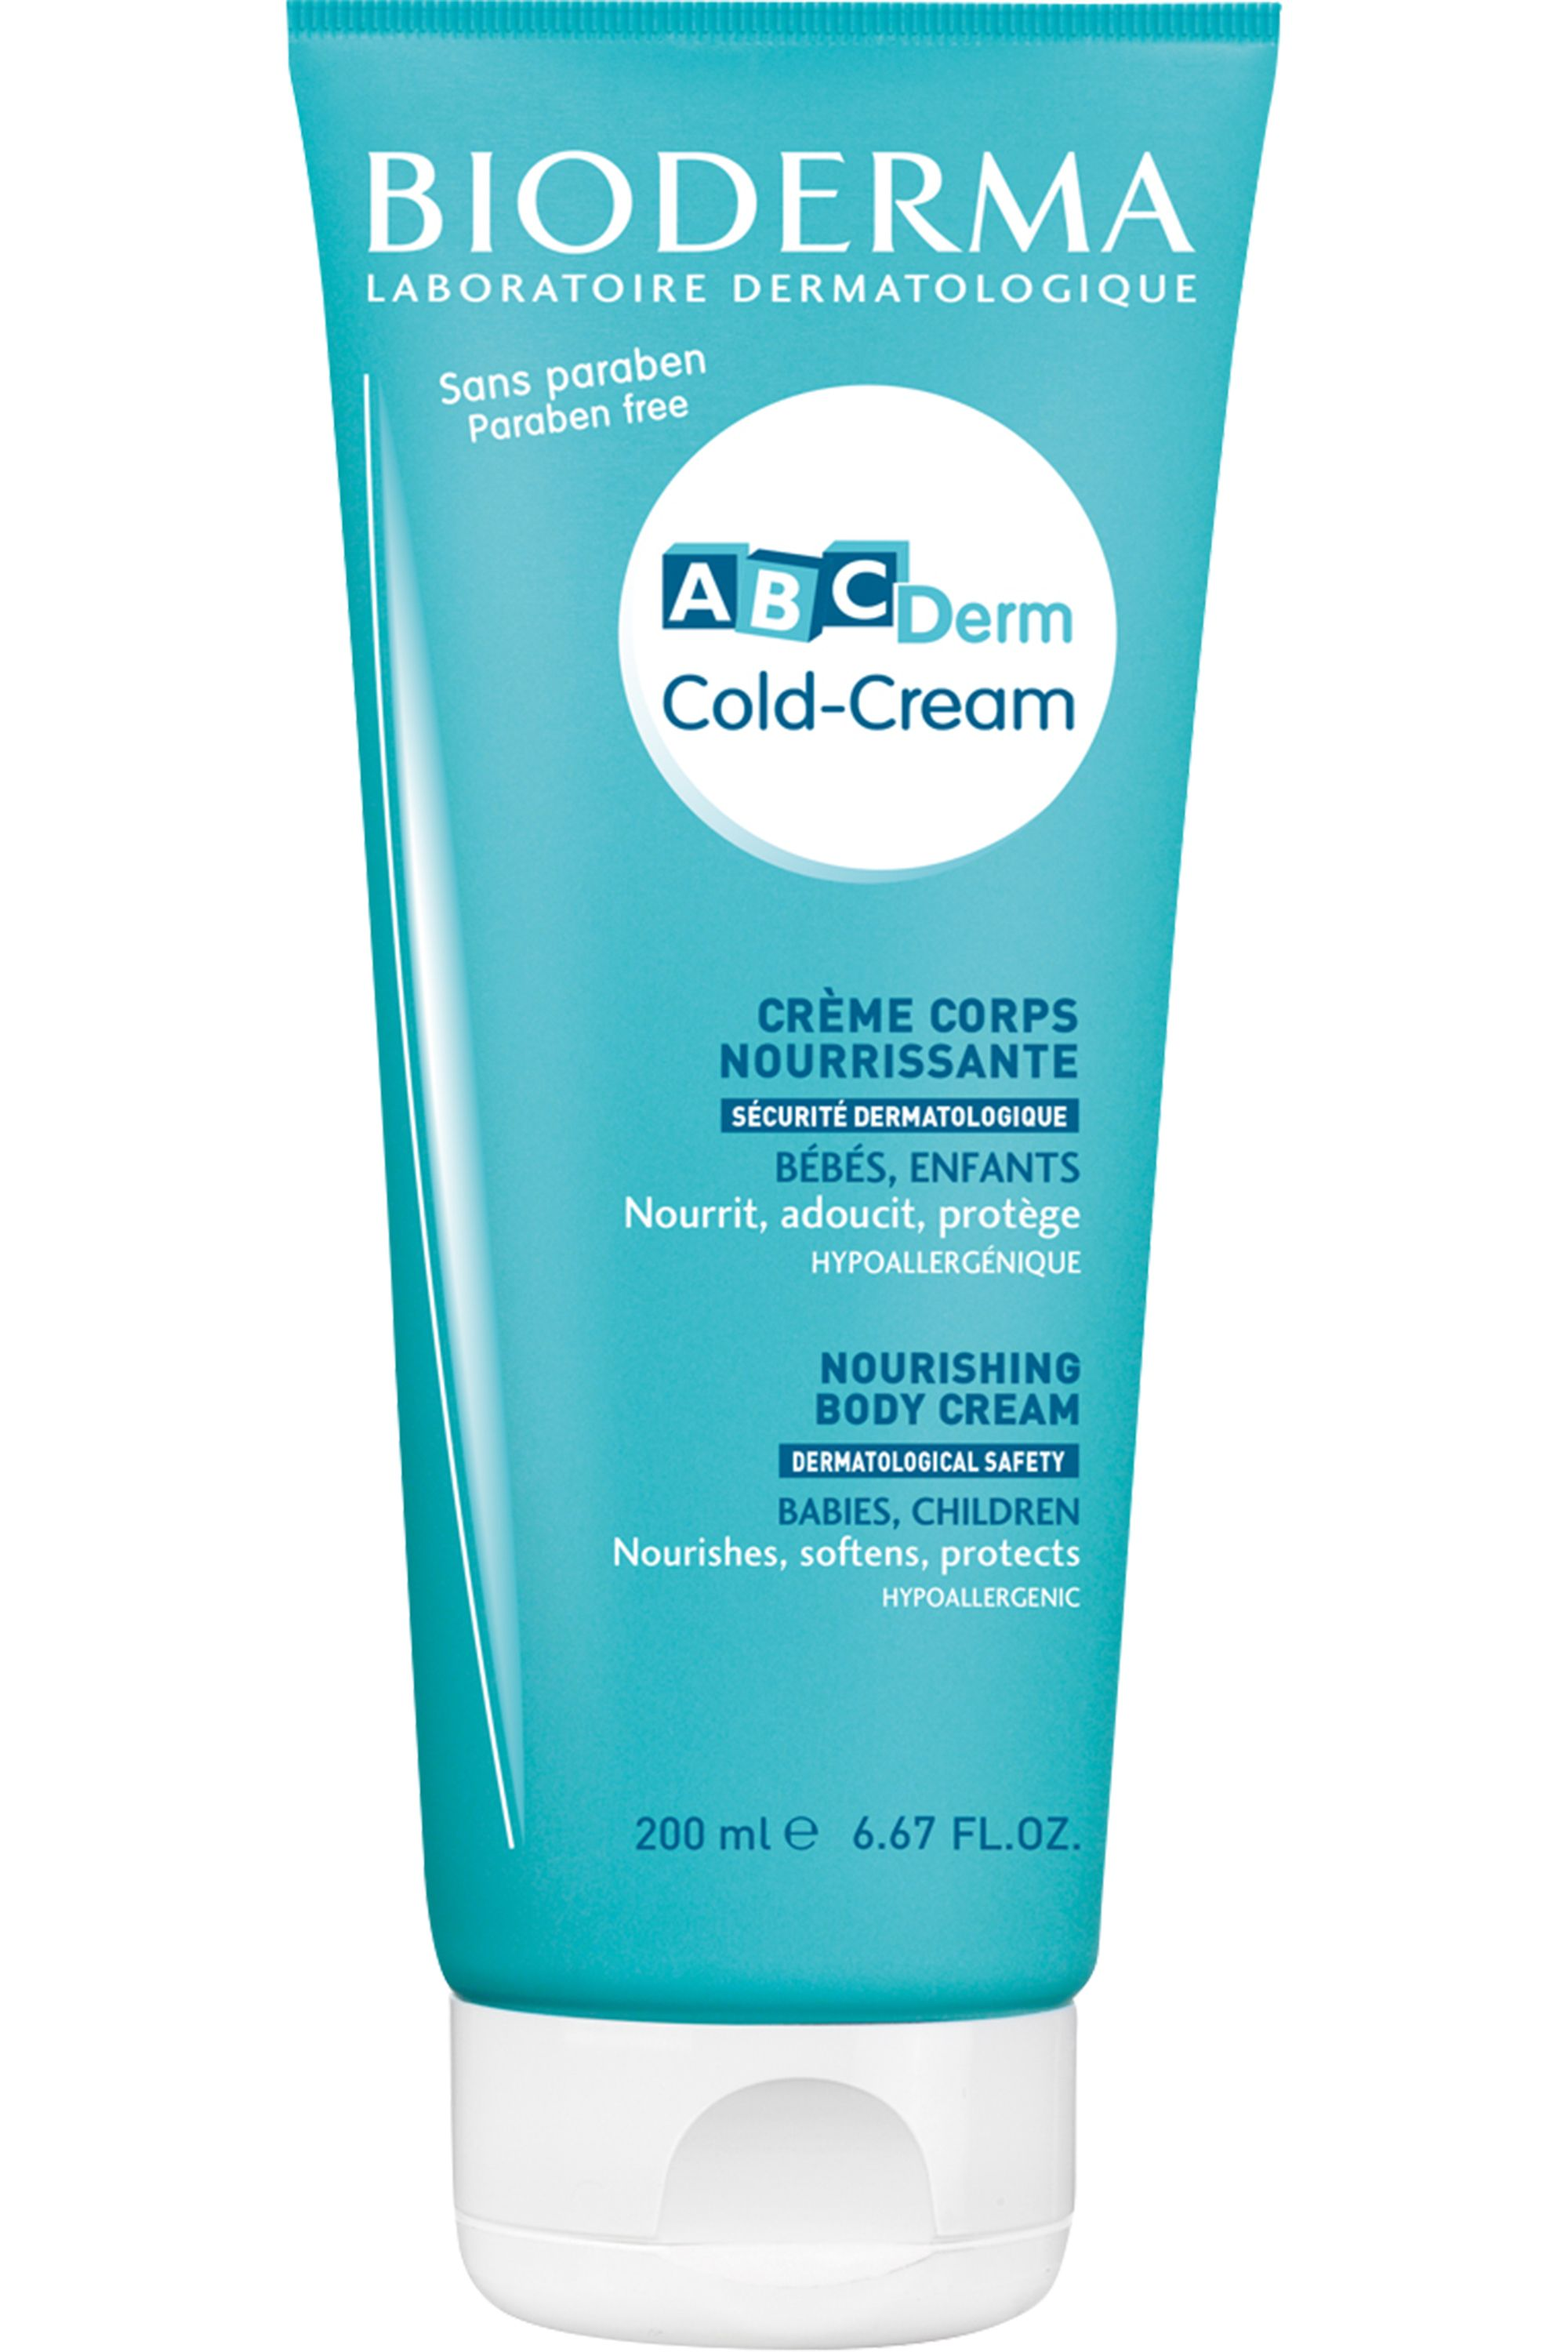 Blissim : Bioderma - Cold Cream Crème corps nourrissante ABCDerm - Cold Cream Crème corps nourrissante ABCDerm